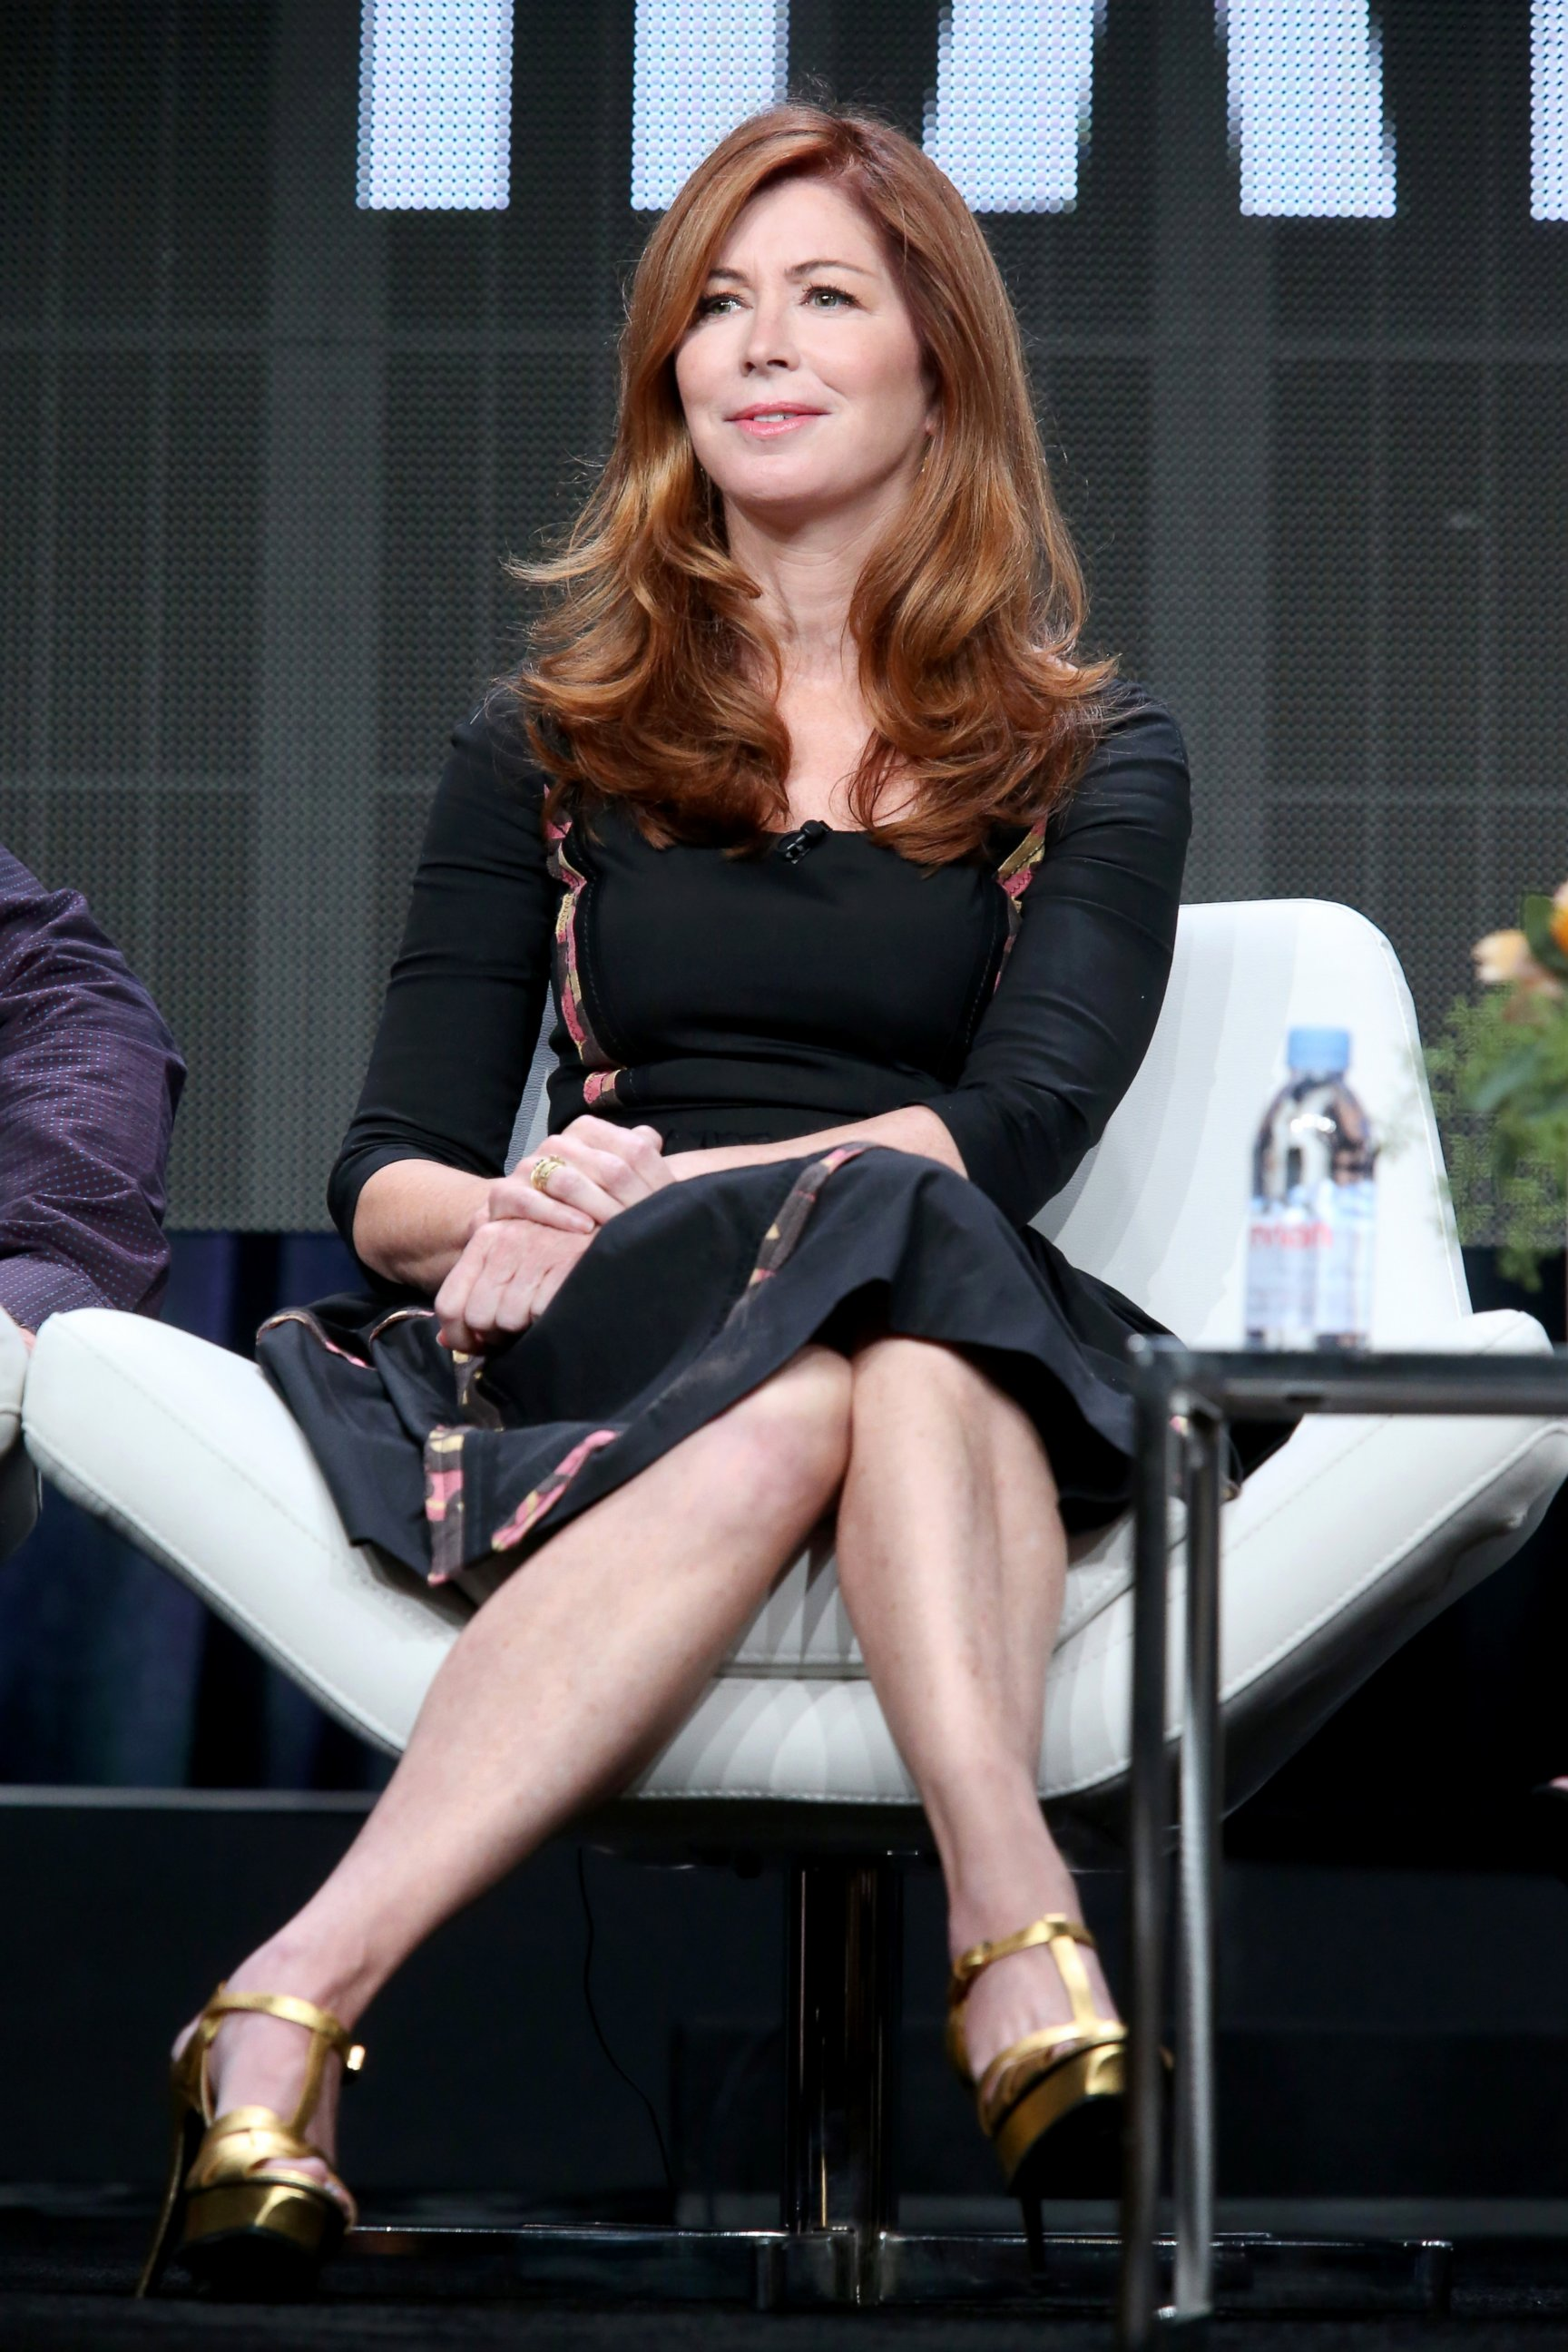 The 62-year old daughter of father Jack Delany and mother Mary Delany Dana Delany in 2018 photo. Dana Delany earned a  million dollar salary - leaving the net worth at  million in 2018